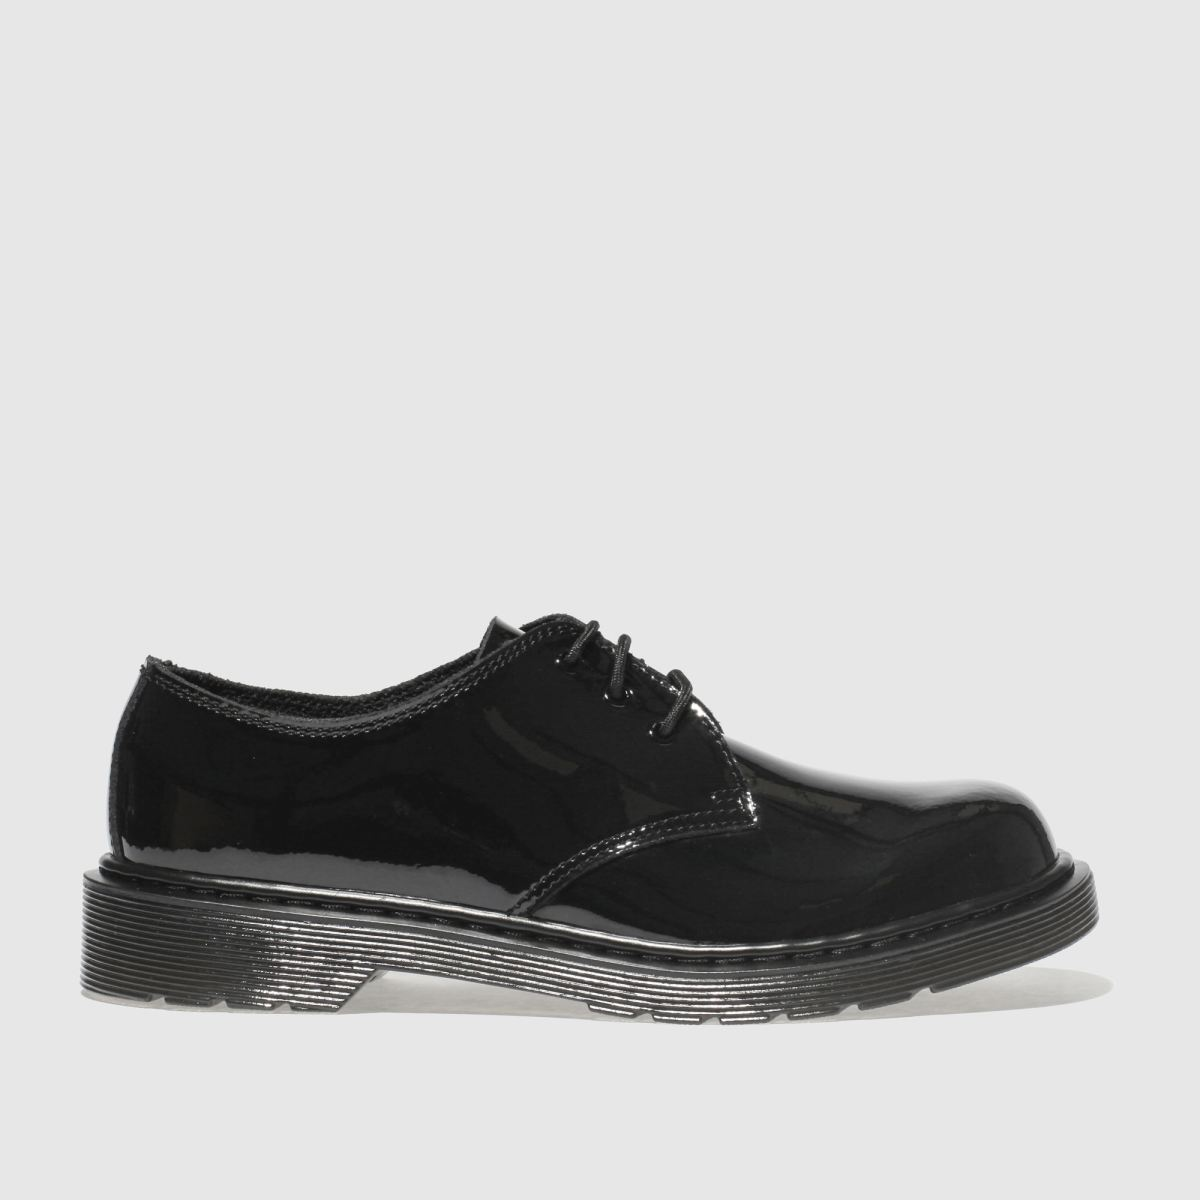 Dr Martens Black 1461 Girls Youth Shoes